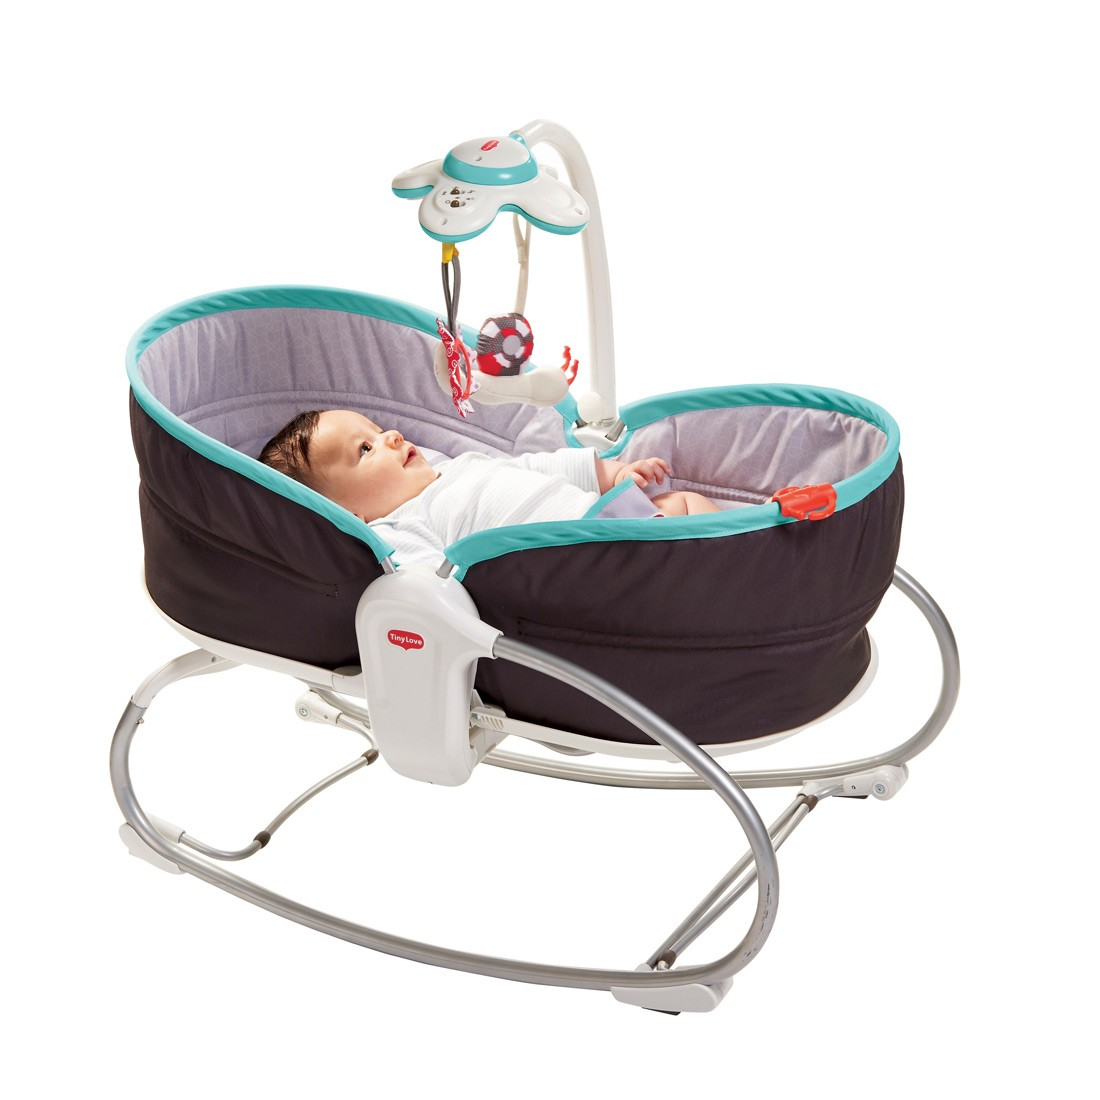 Baby Chair Upright Tiny Love 3 In 1 Rocking Vibrating Bouncy Chair Moses Basket